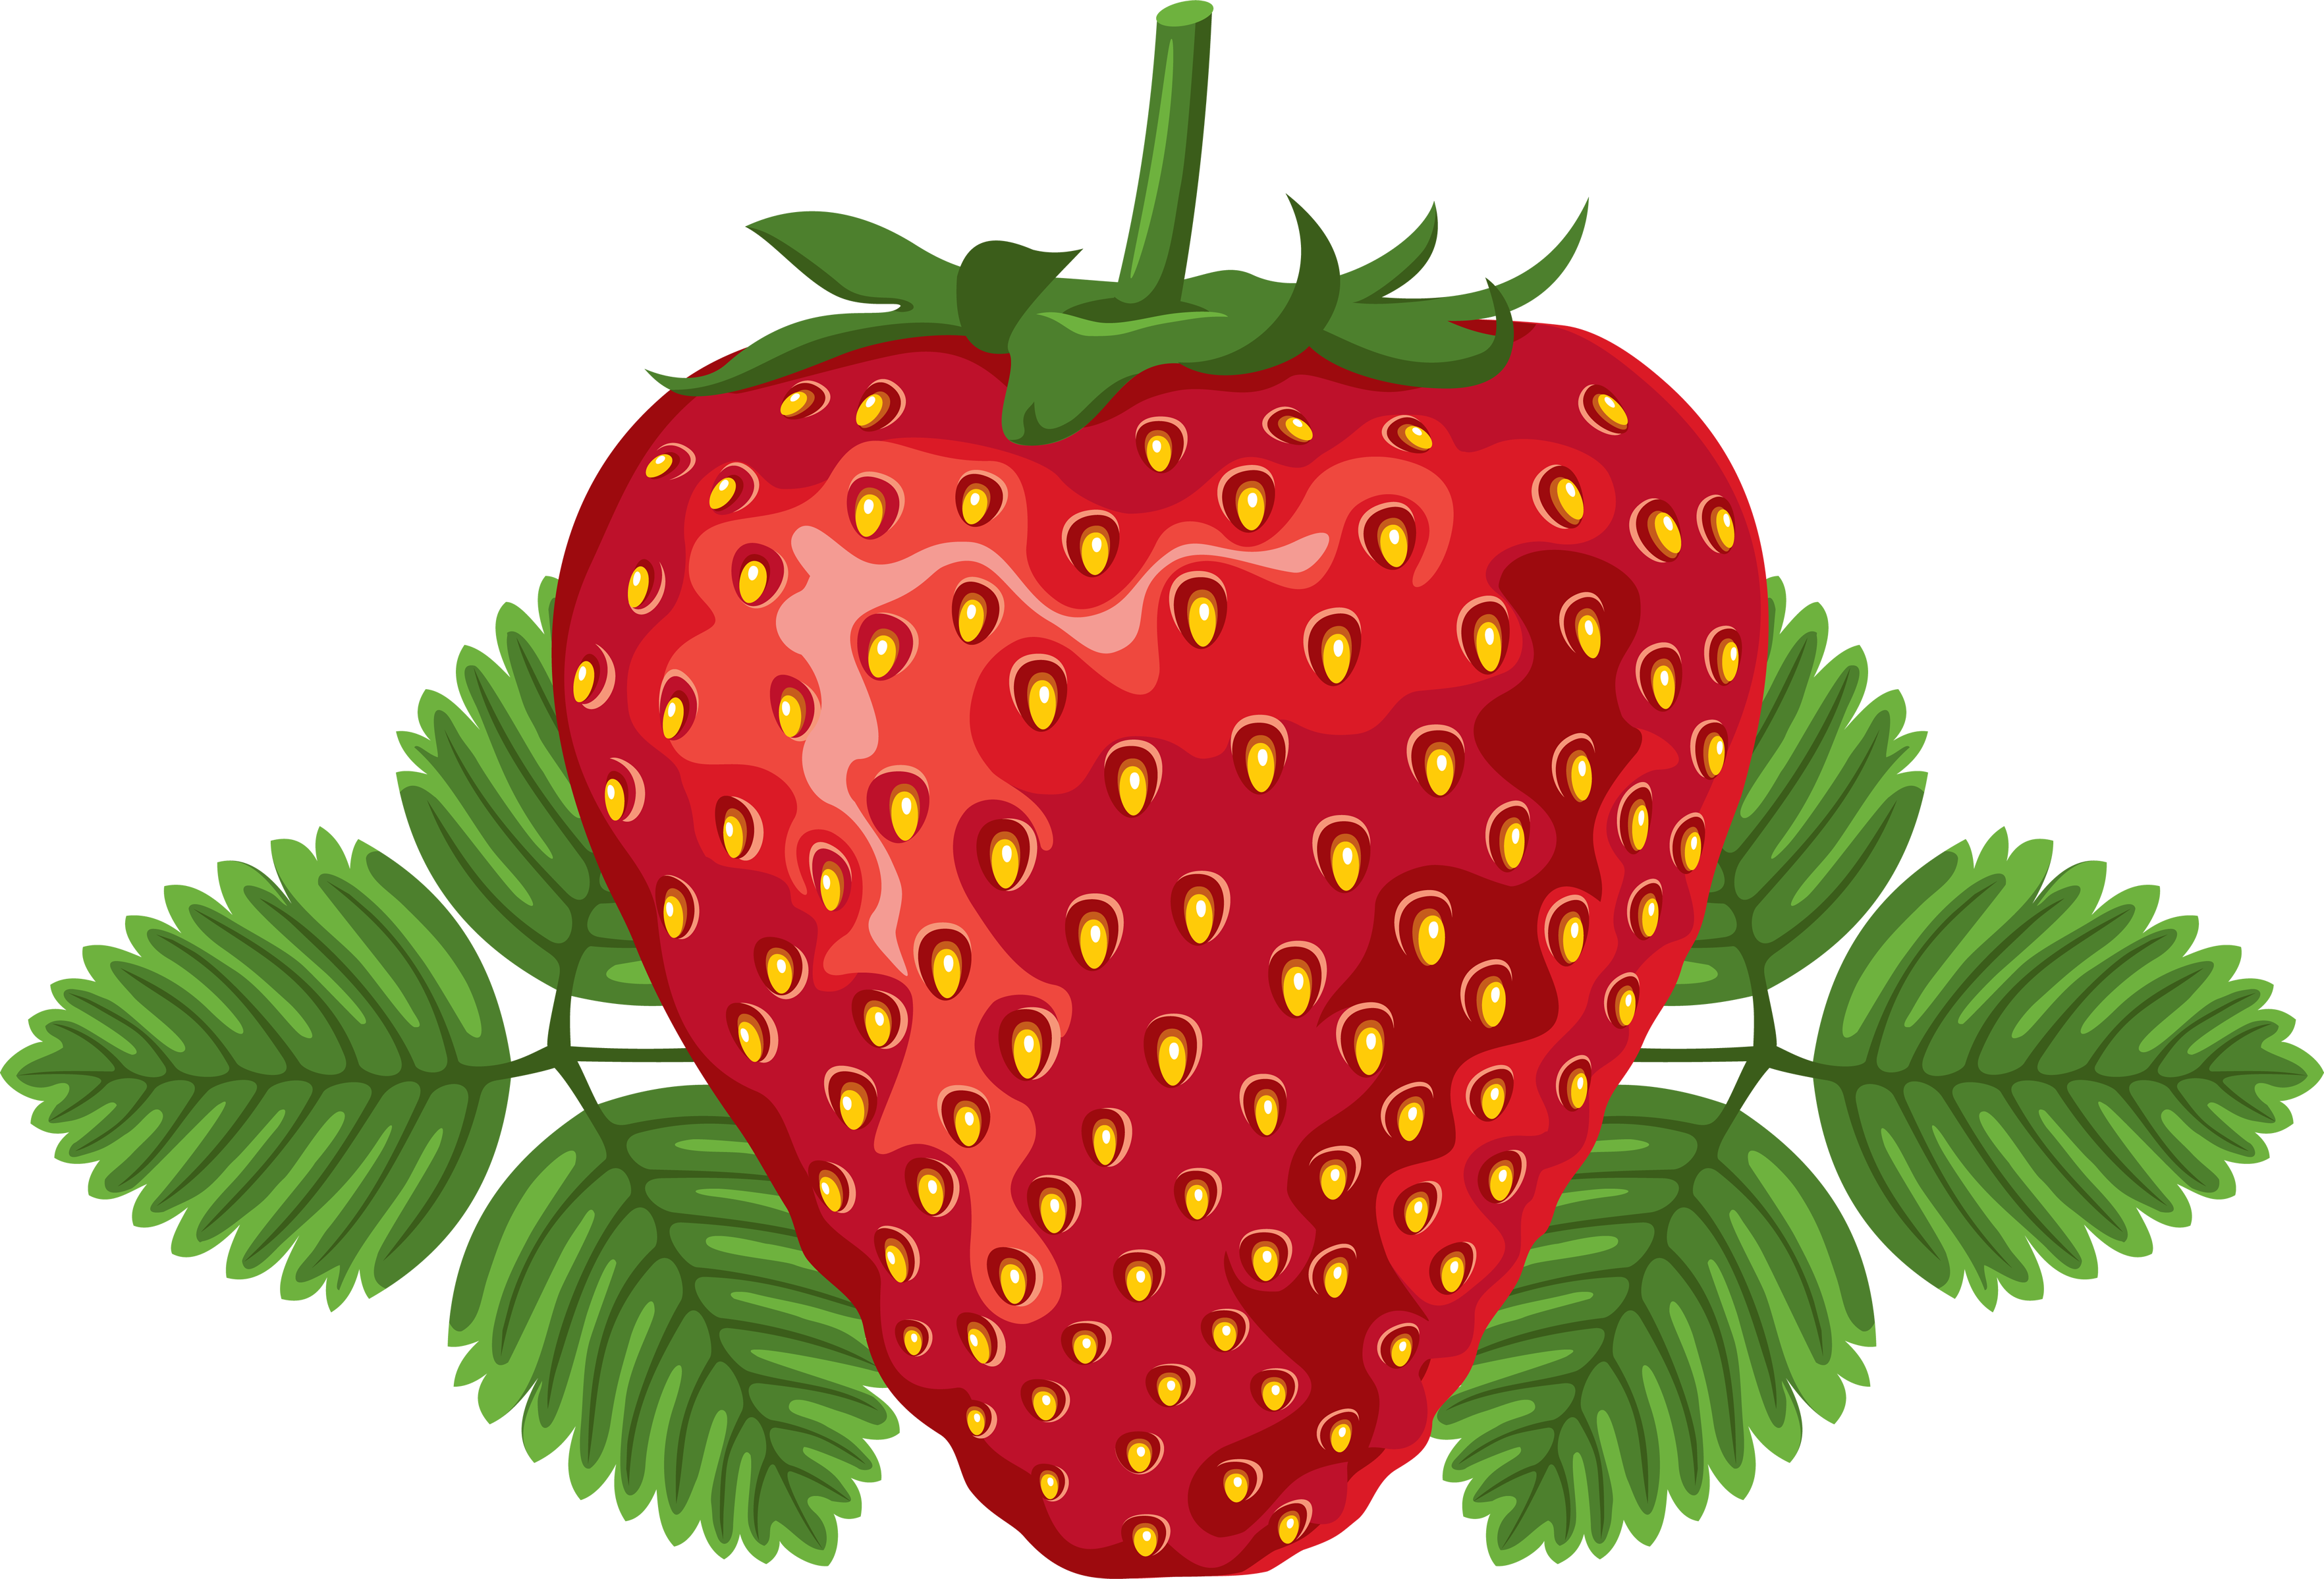 Strawberry png image without. Strawberries clipart clear background